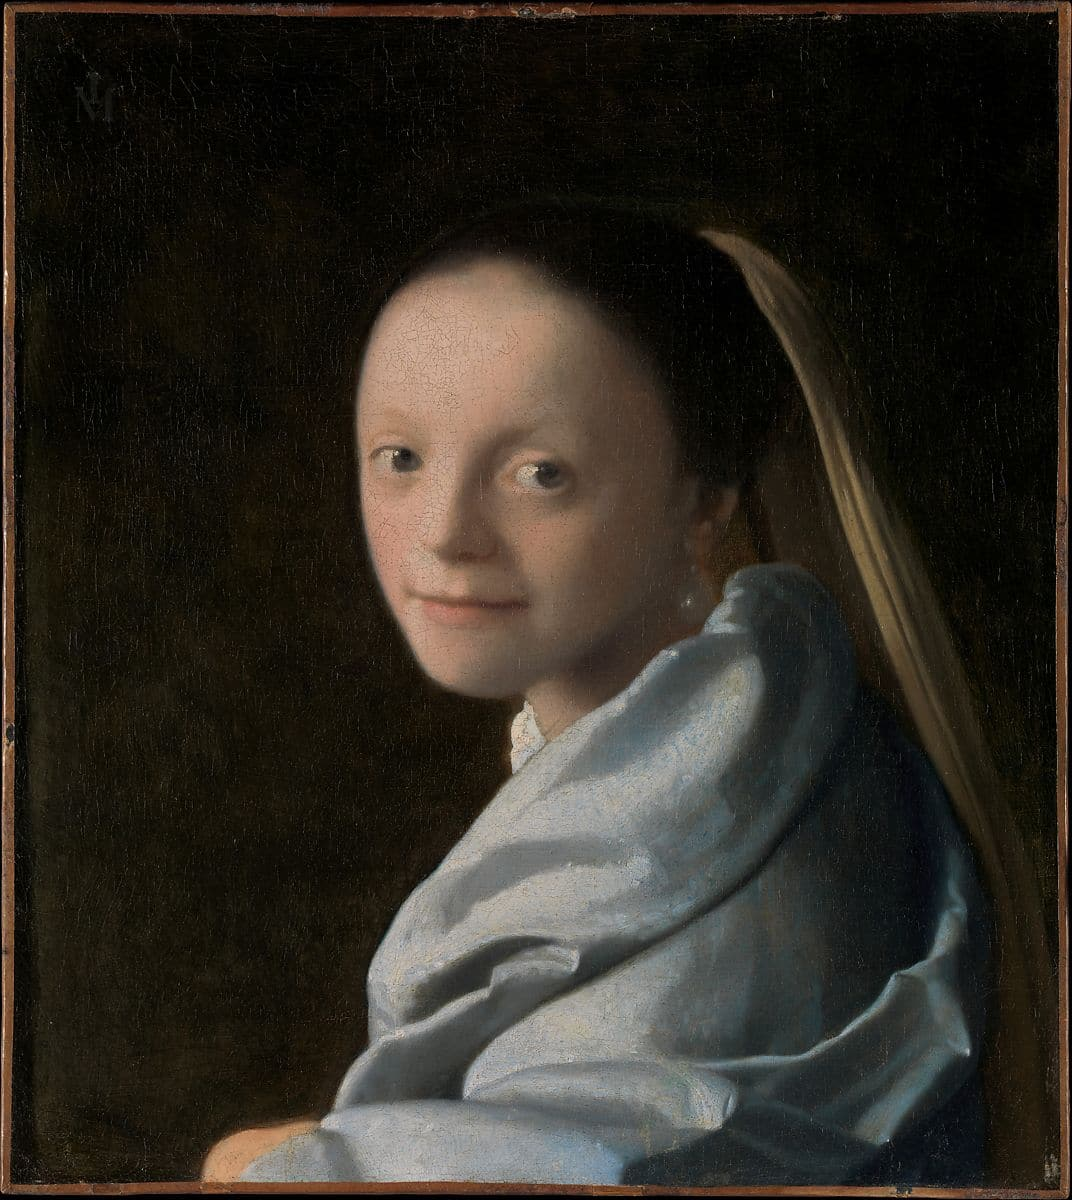 vermeer-portrait-painting